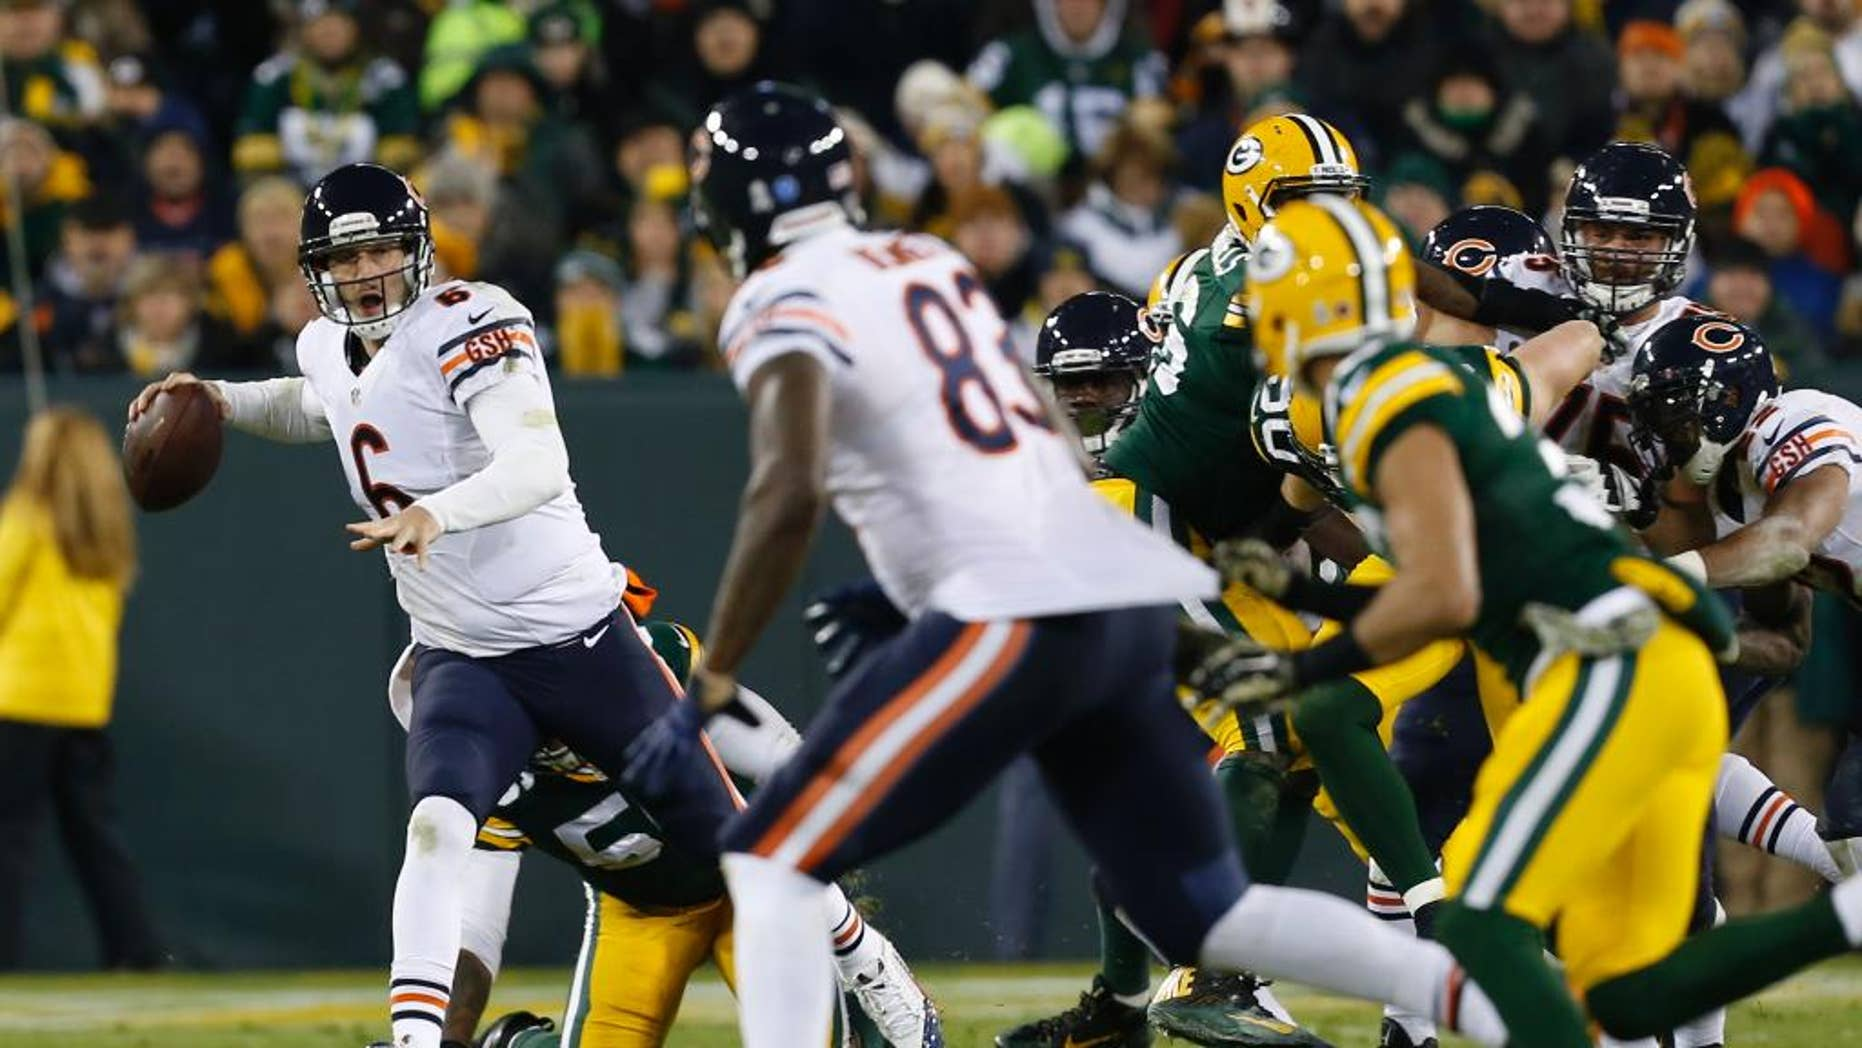 Chicago Bears quarterback Jay Cutler (6) looks to throw a pass to tight end Martellus Bennett (83) during the second half of an NFL football game against the Green Bay Packers Sunday, Nov. 9, 2014, in Green Bay, Wis. The pass in this play was incomplete. (AP Photo/Mike Roemer)